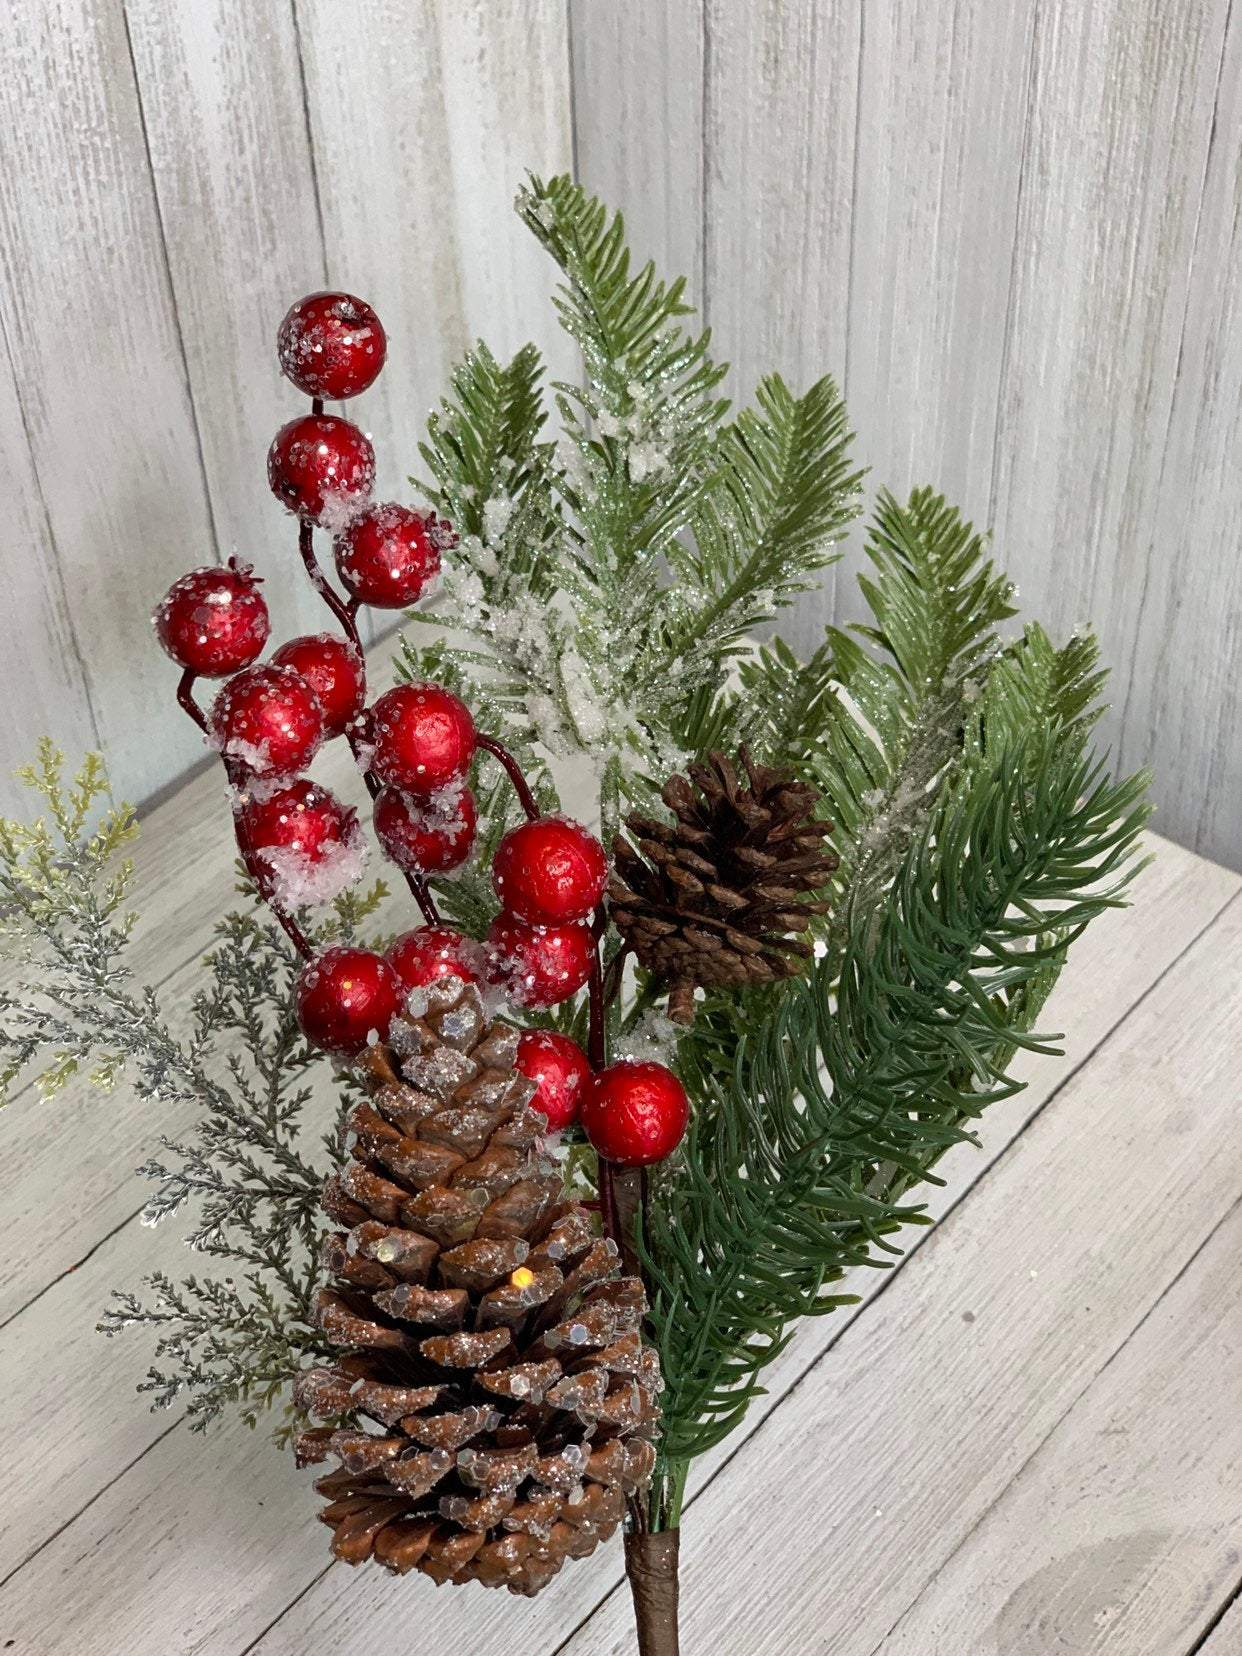 Artificial Pine, pine with berries, artifical berry, artifical greenery, winter greenery greenery for Christmas, fake pine